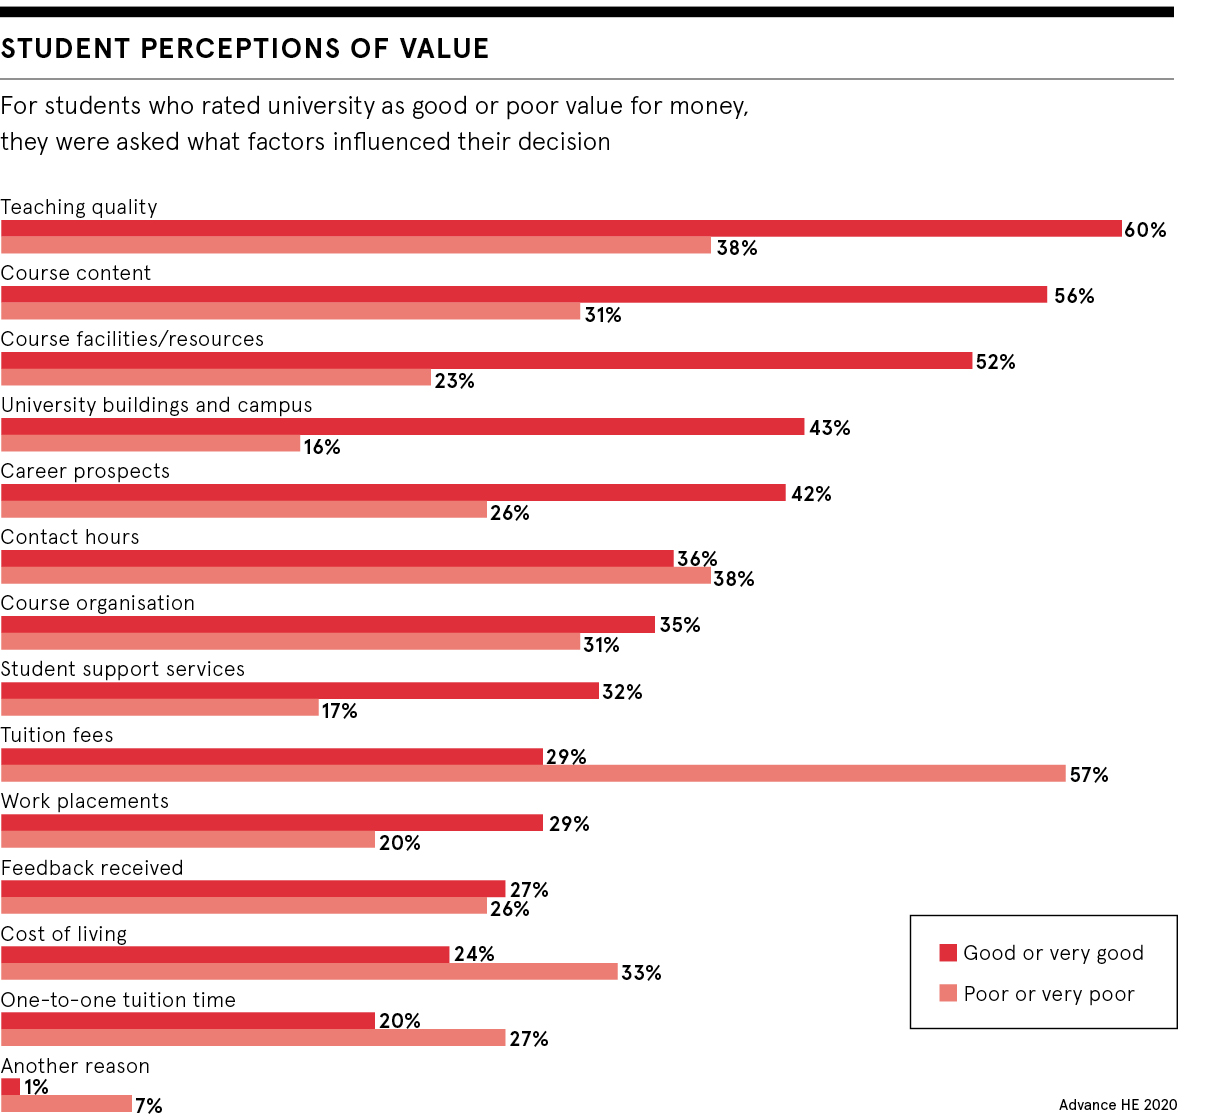 Student perceptions of value